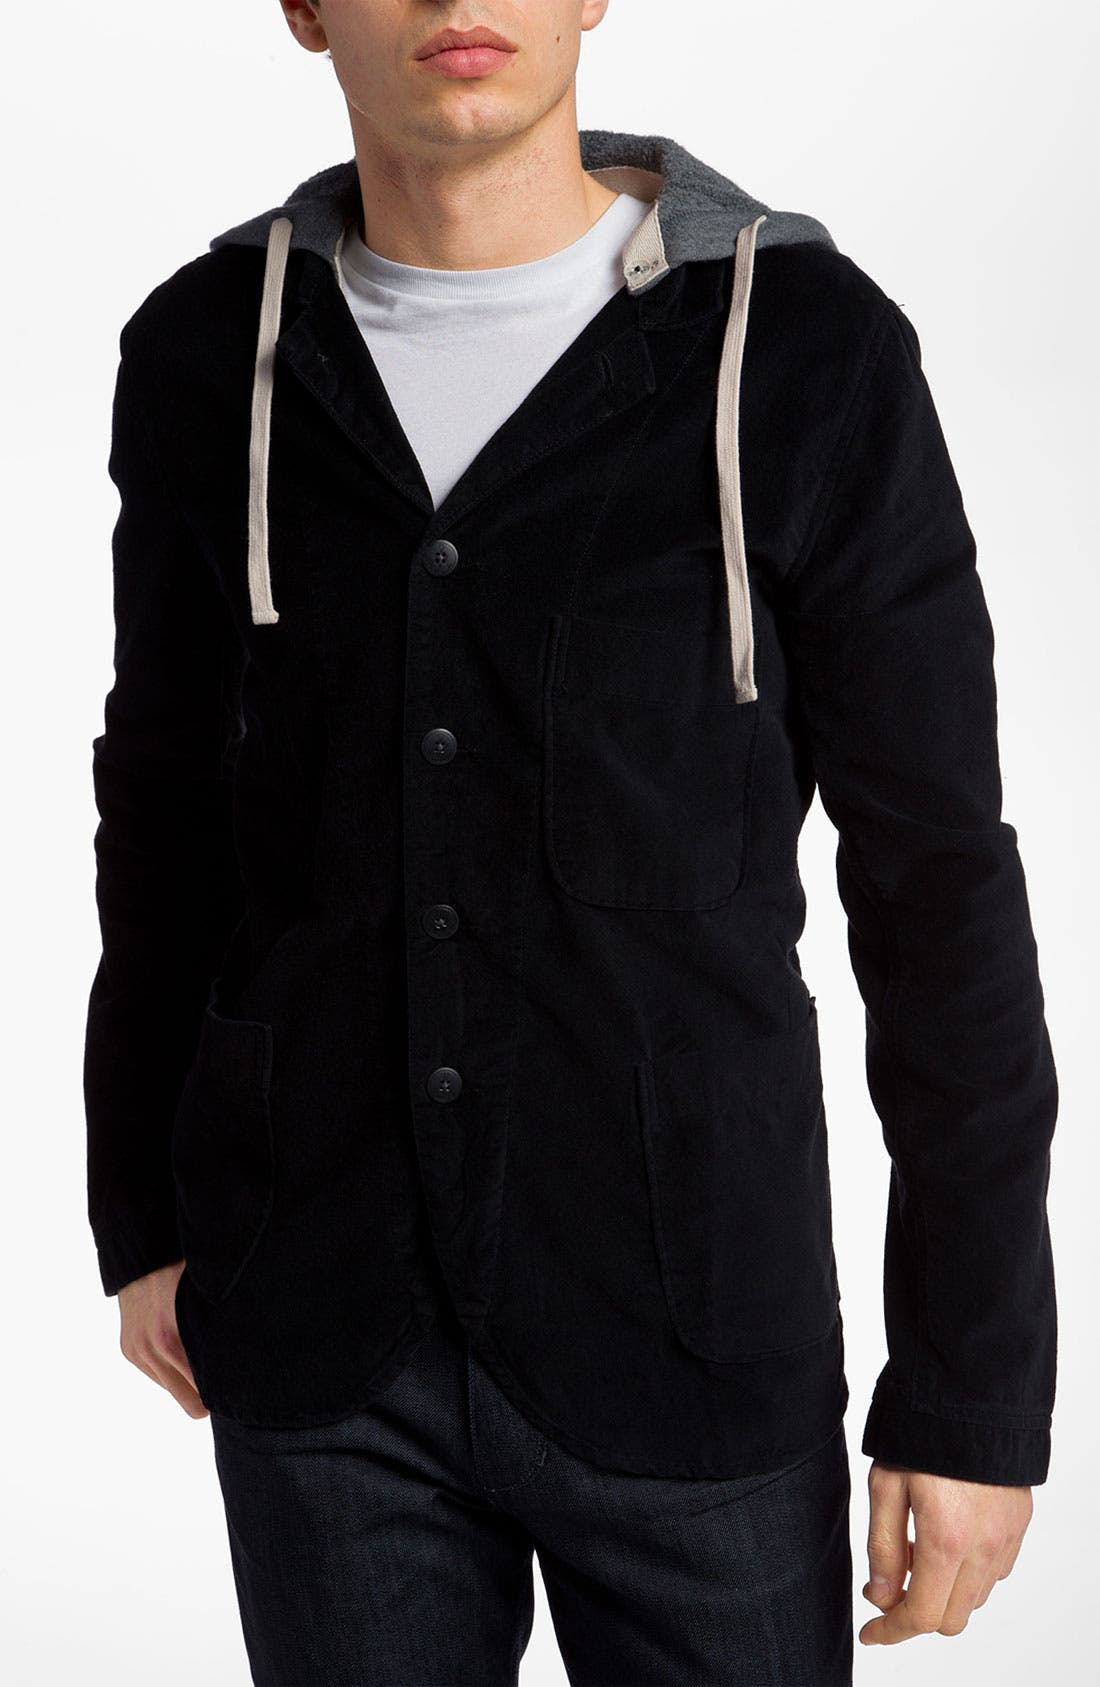 Main Image - Alternative 'Bridgeport' Hooded Blazer Style Jacket